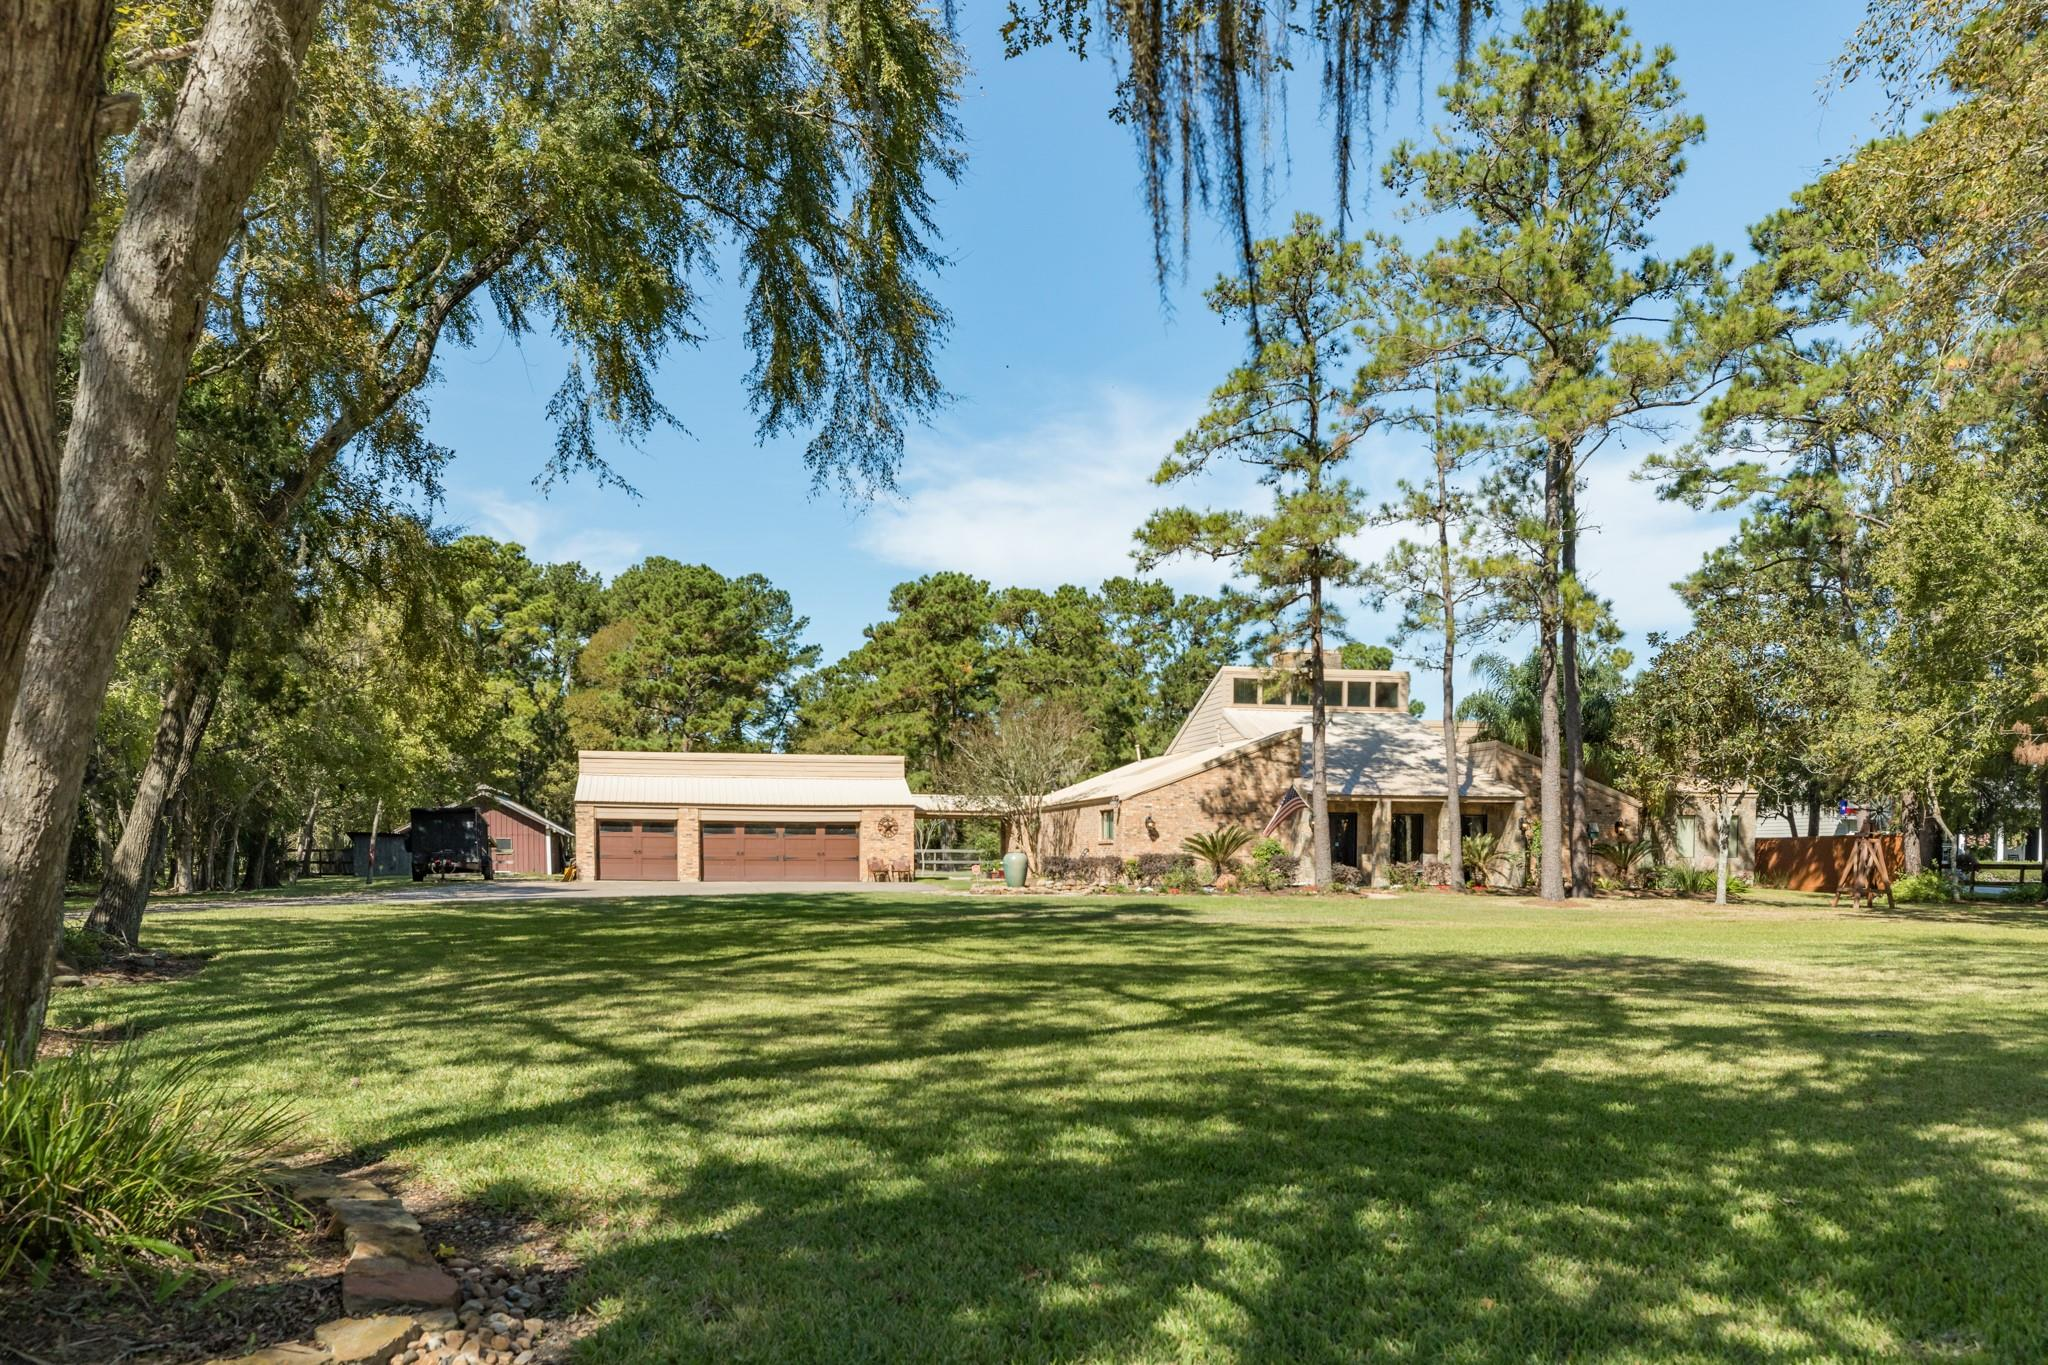 204 Whispering Pines Avenue Property Photo - Friendswood, TX real estate listing